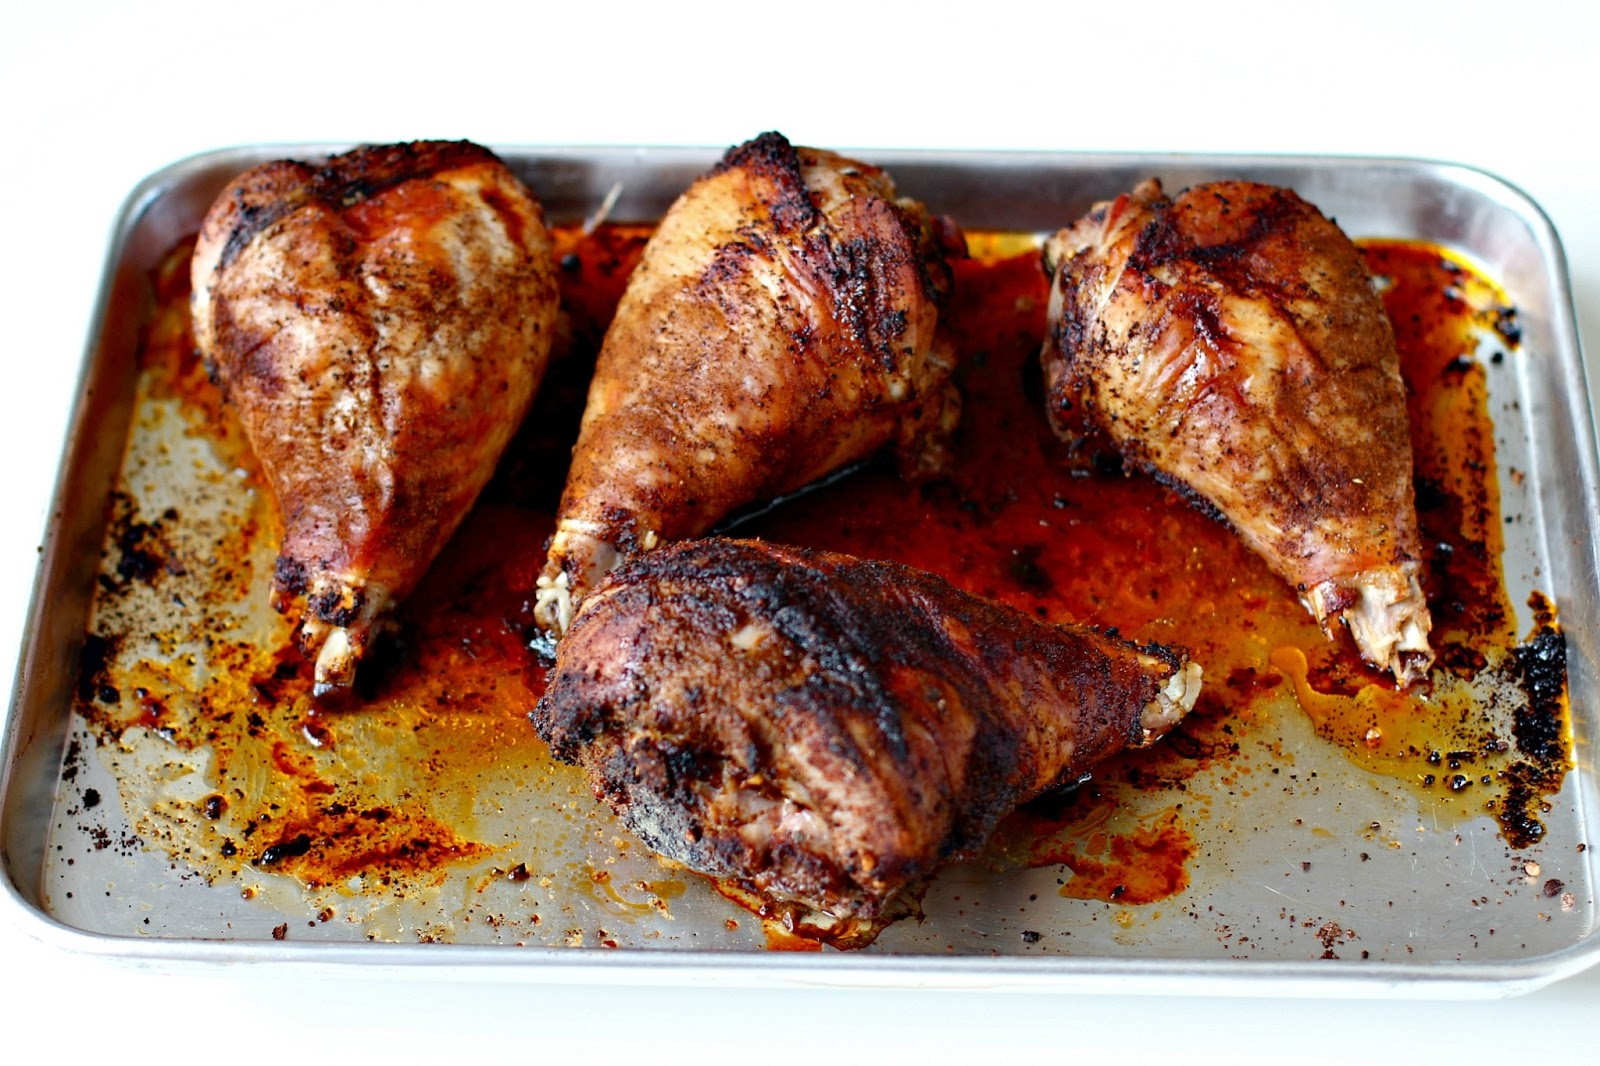 Milk and Honey: Caveman Pops (aka Roasted Turkey Legs)